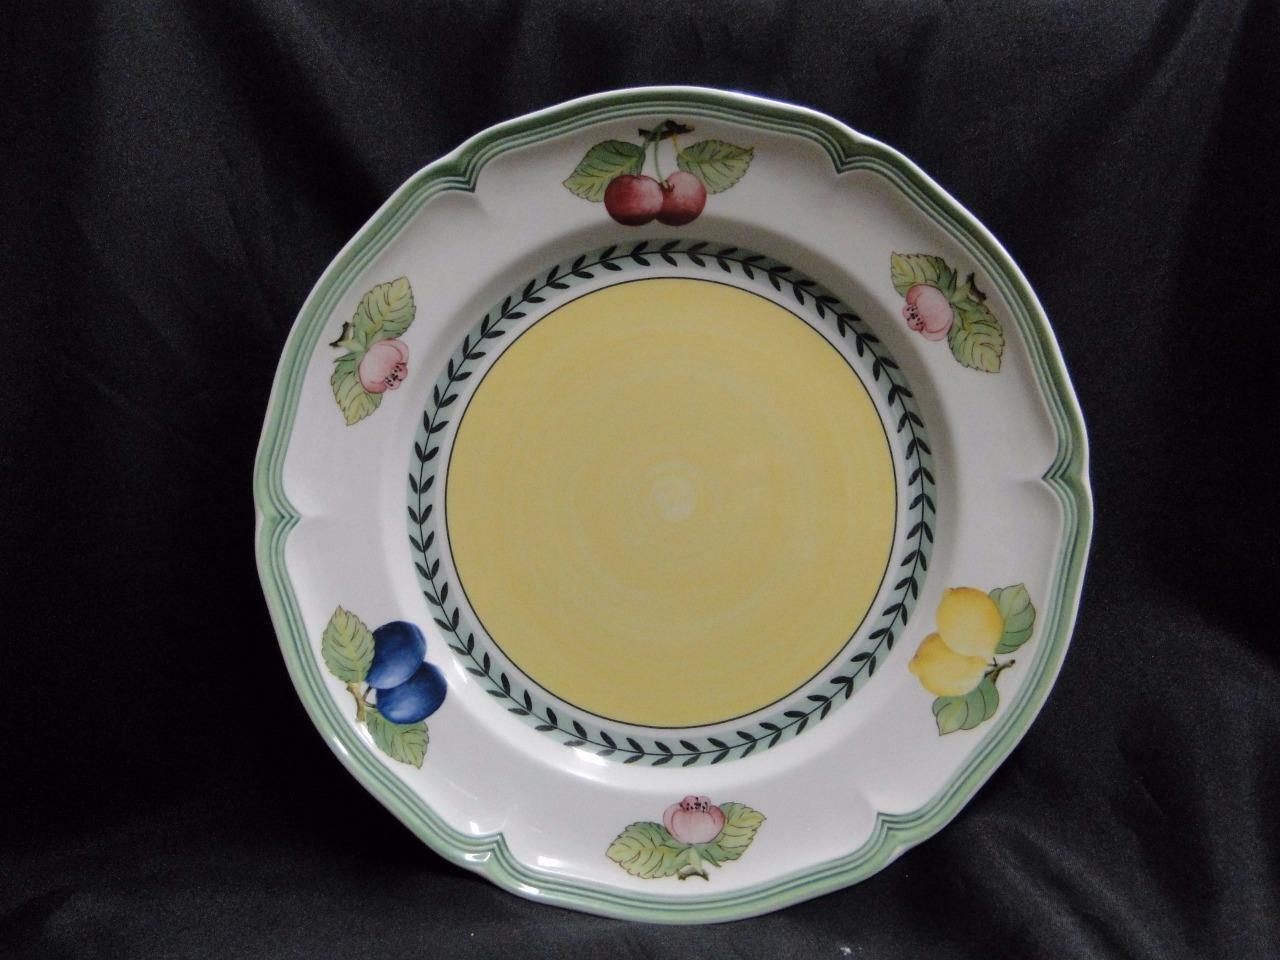 Villeroy U0026 Boch French Garden Fleurence, Fruit: Dinner Plate (s), 10 1 Of  1Only 1 Available See More